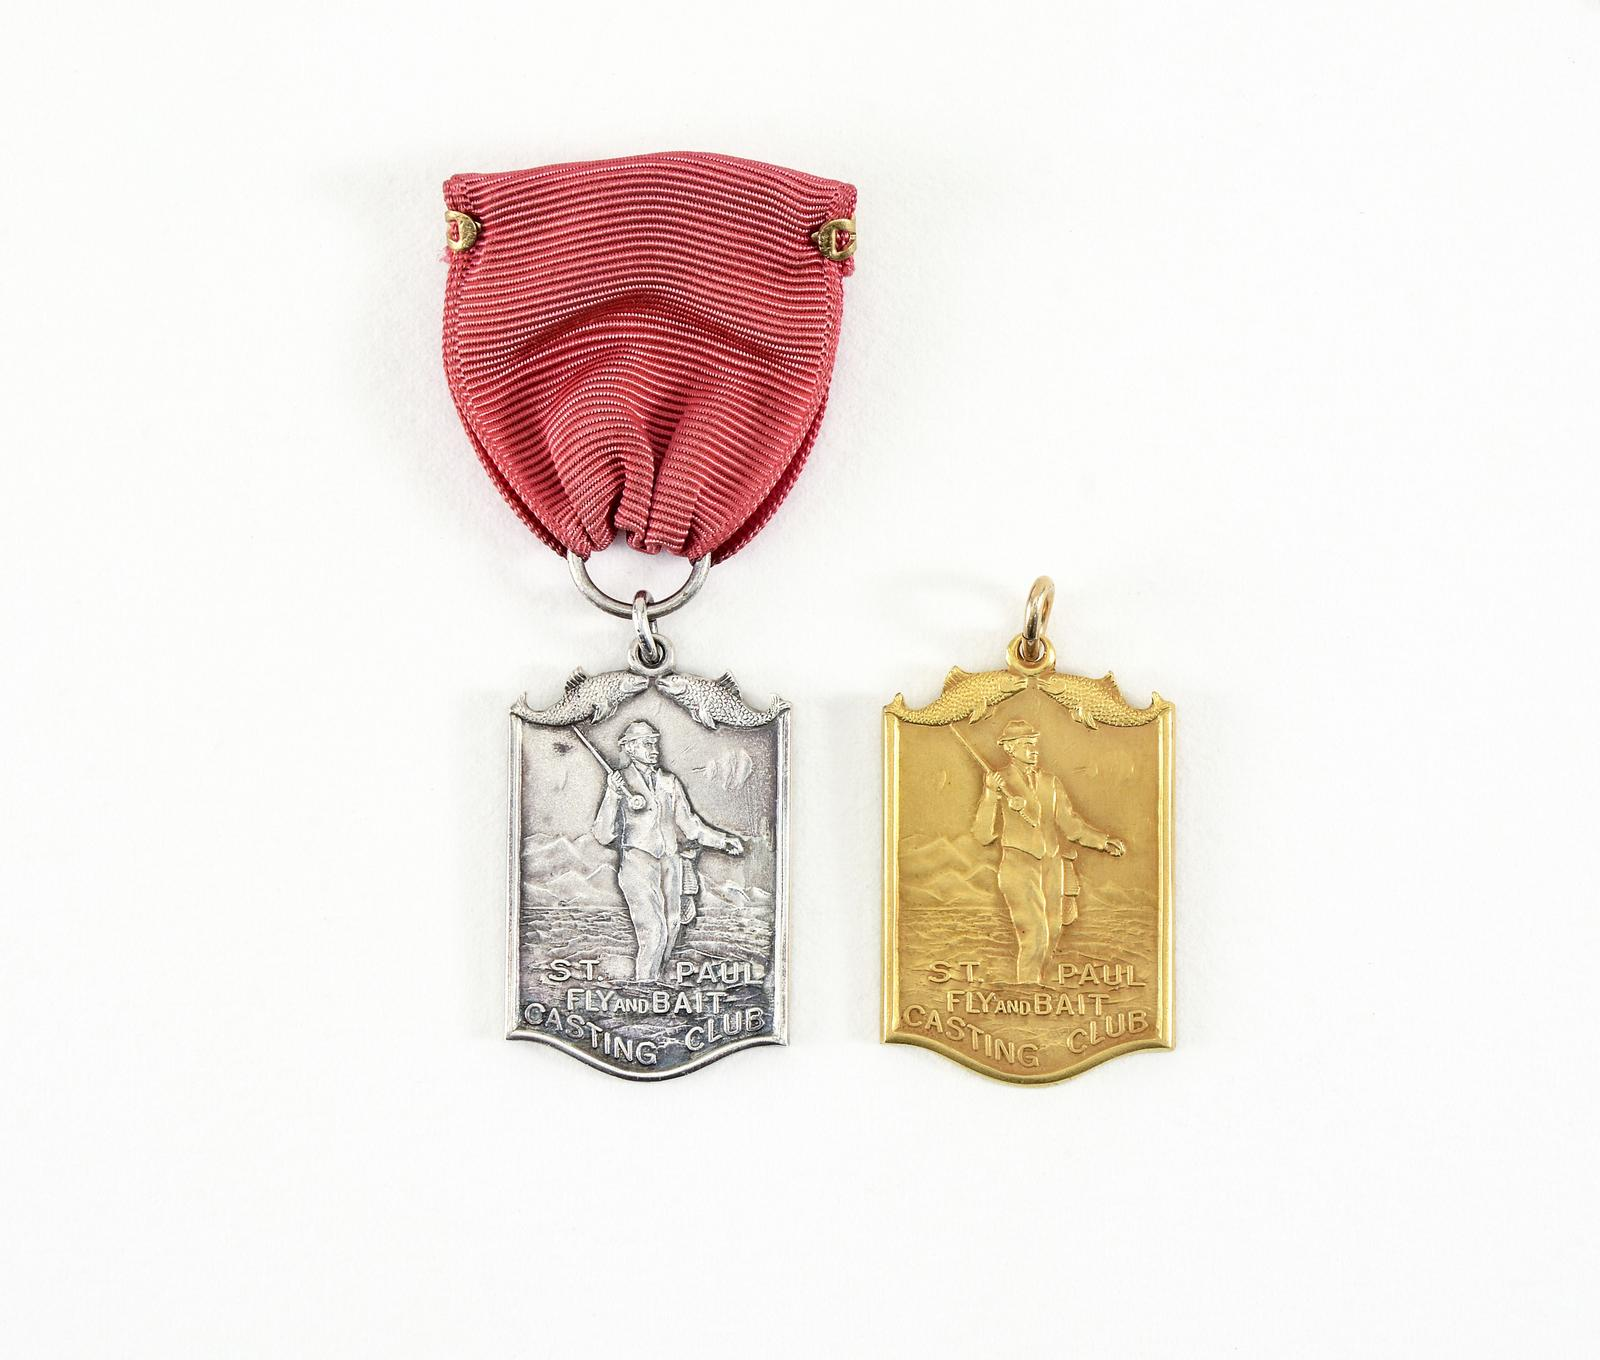 2 St  Paul Fly & Bait Casting Club Award Medals | Lang's Auction Inc